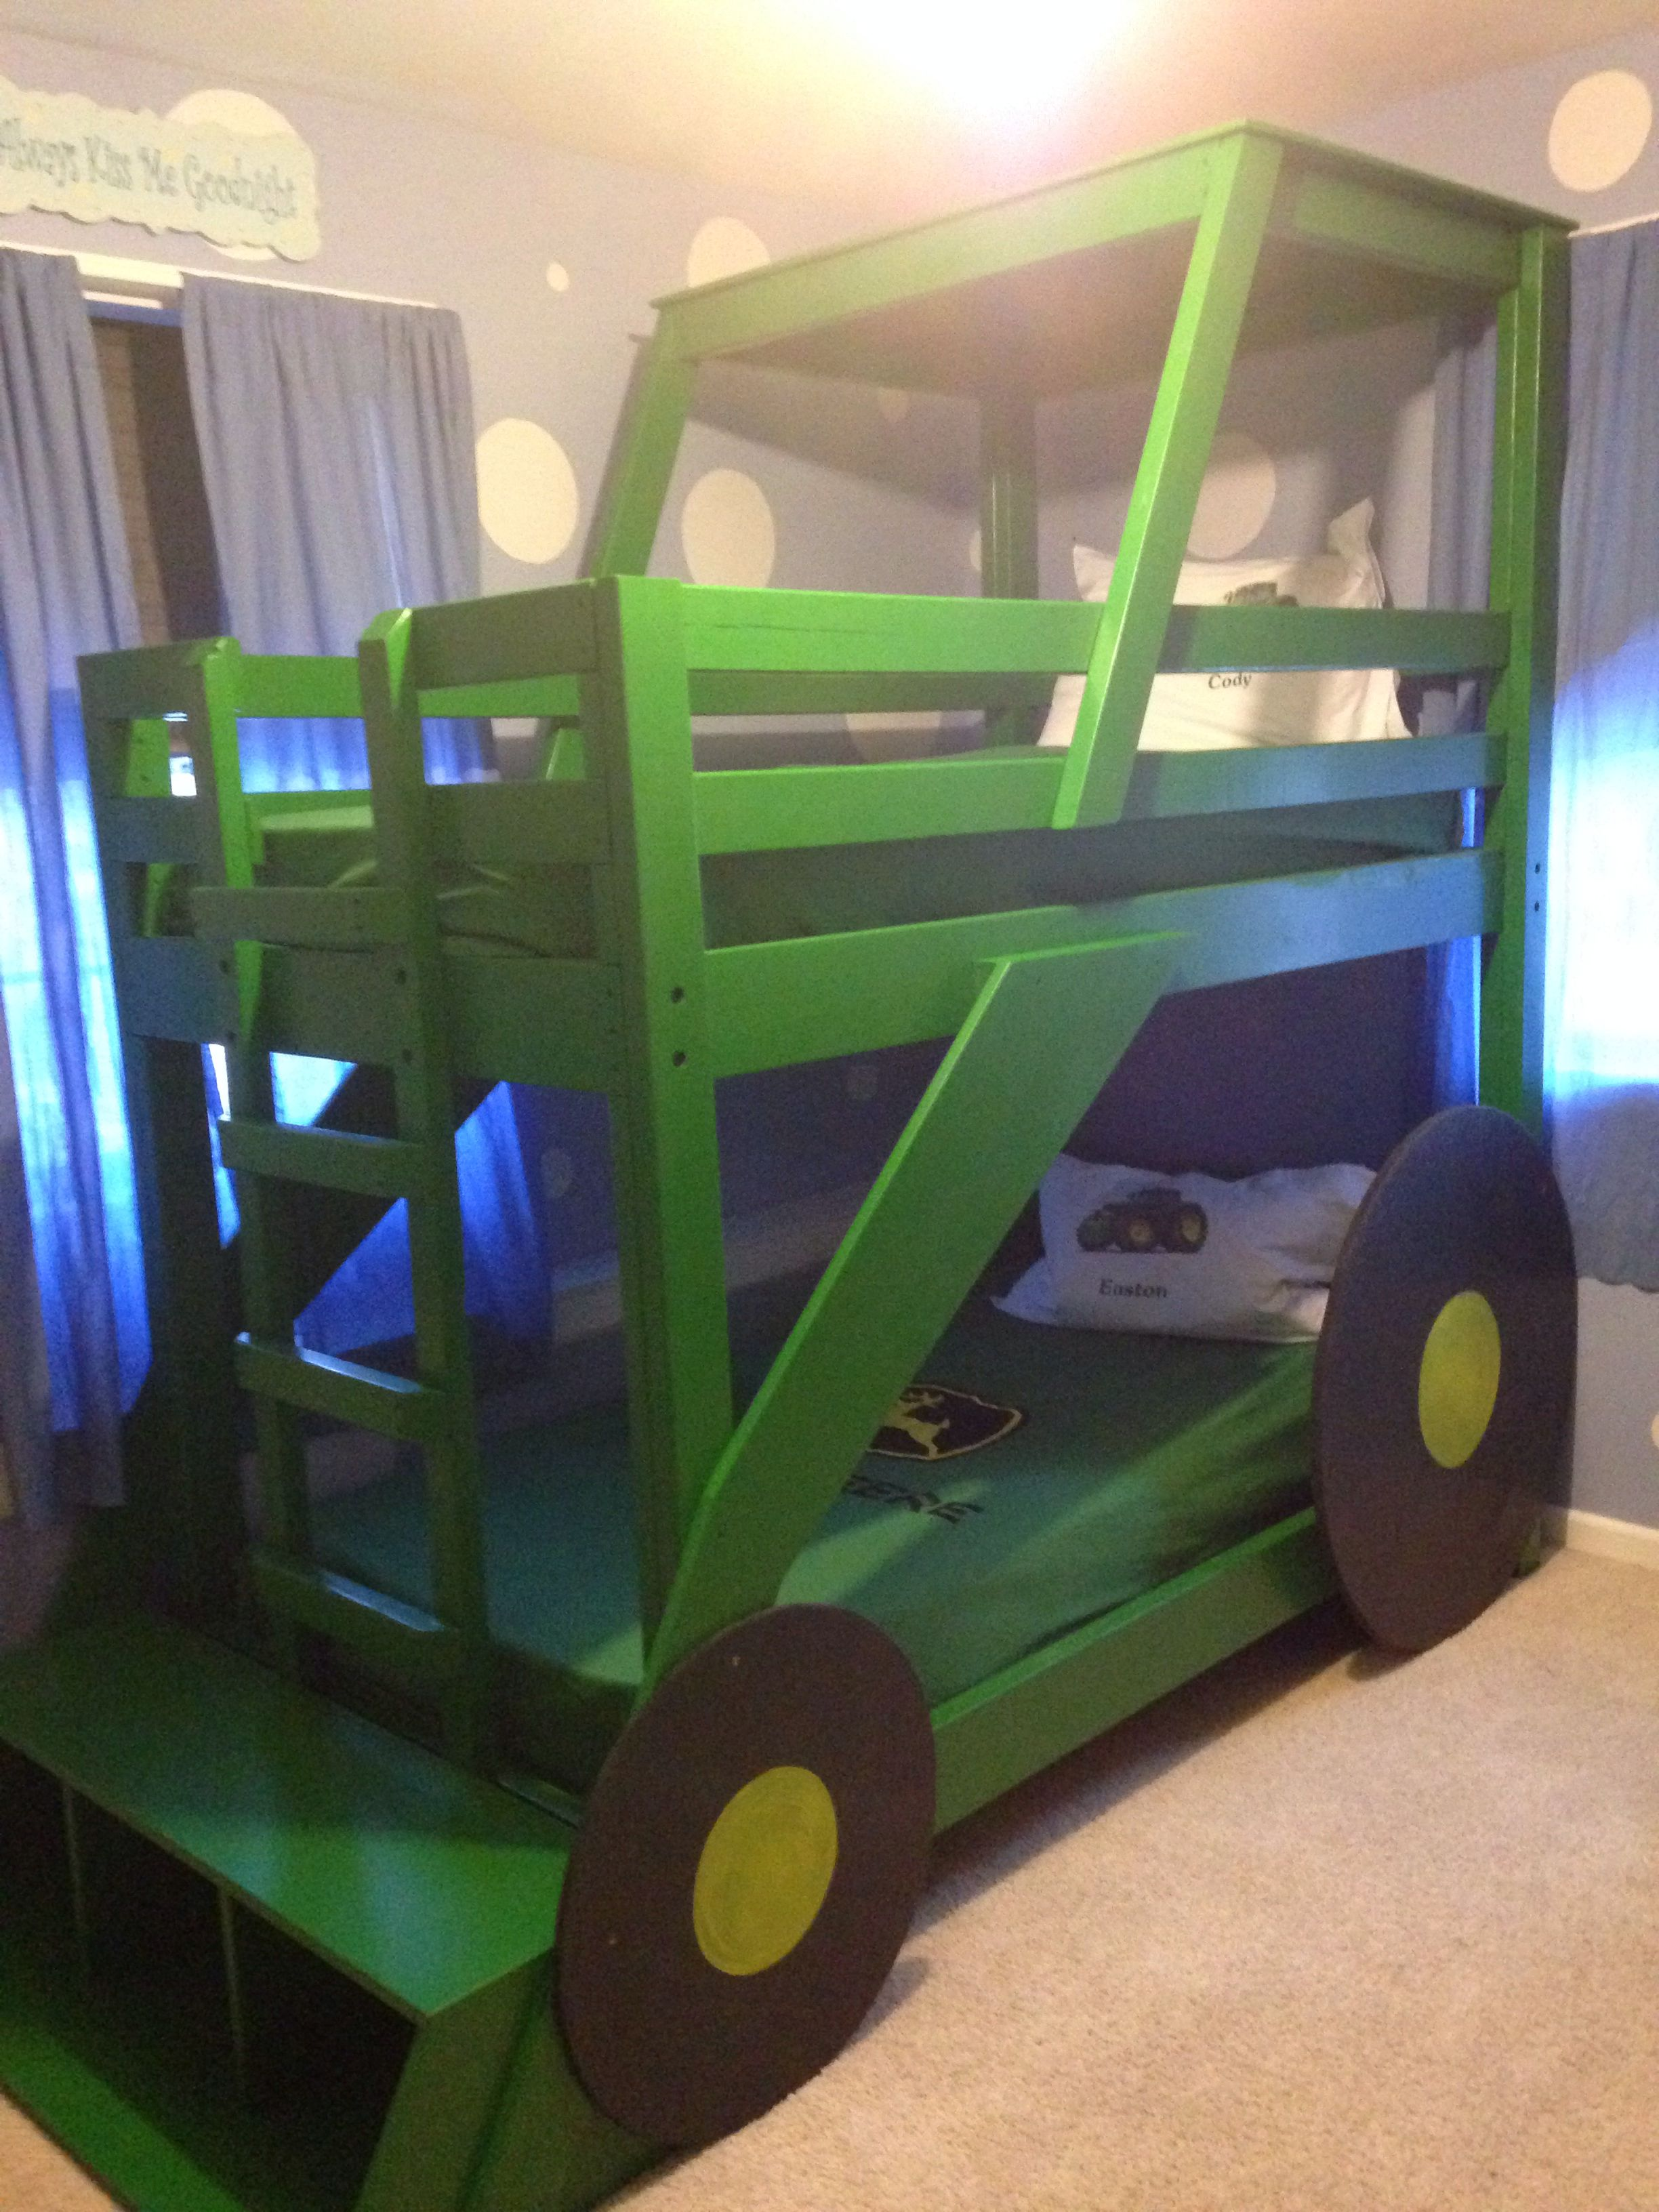 Handmade Tractor Bunk Bed Things To Make In My Spare Time Pinterest Bunk Bed Room And